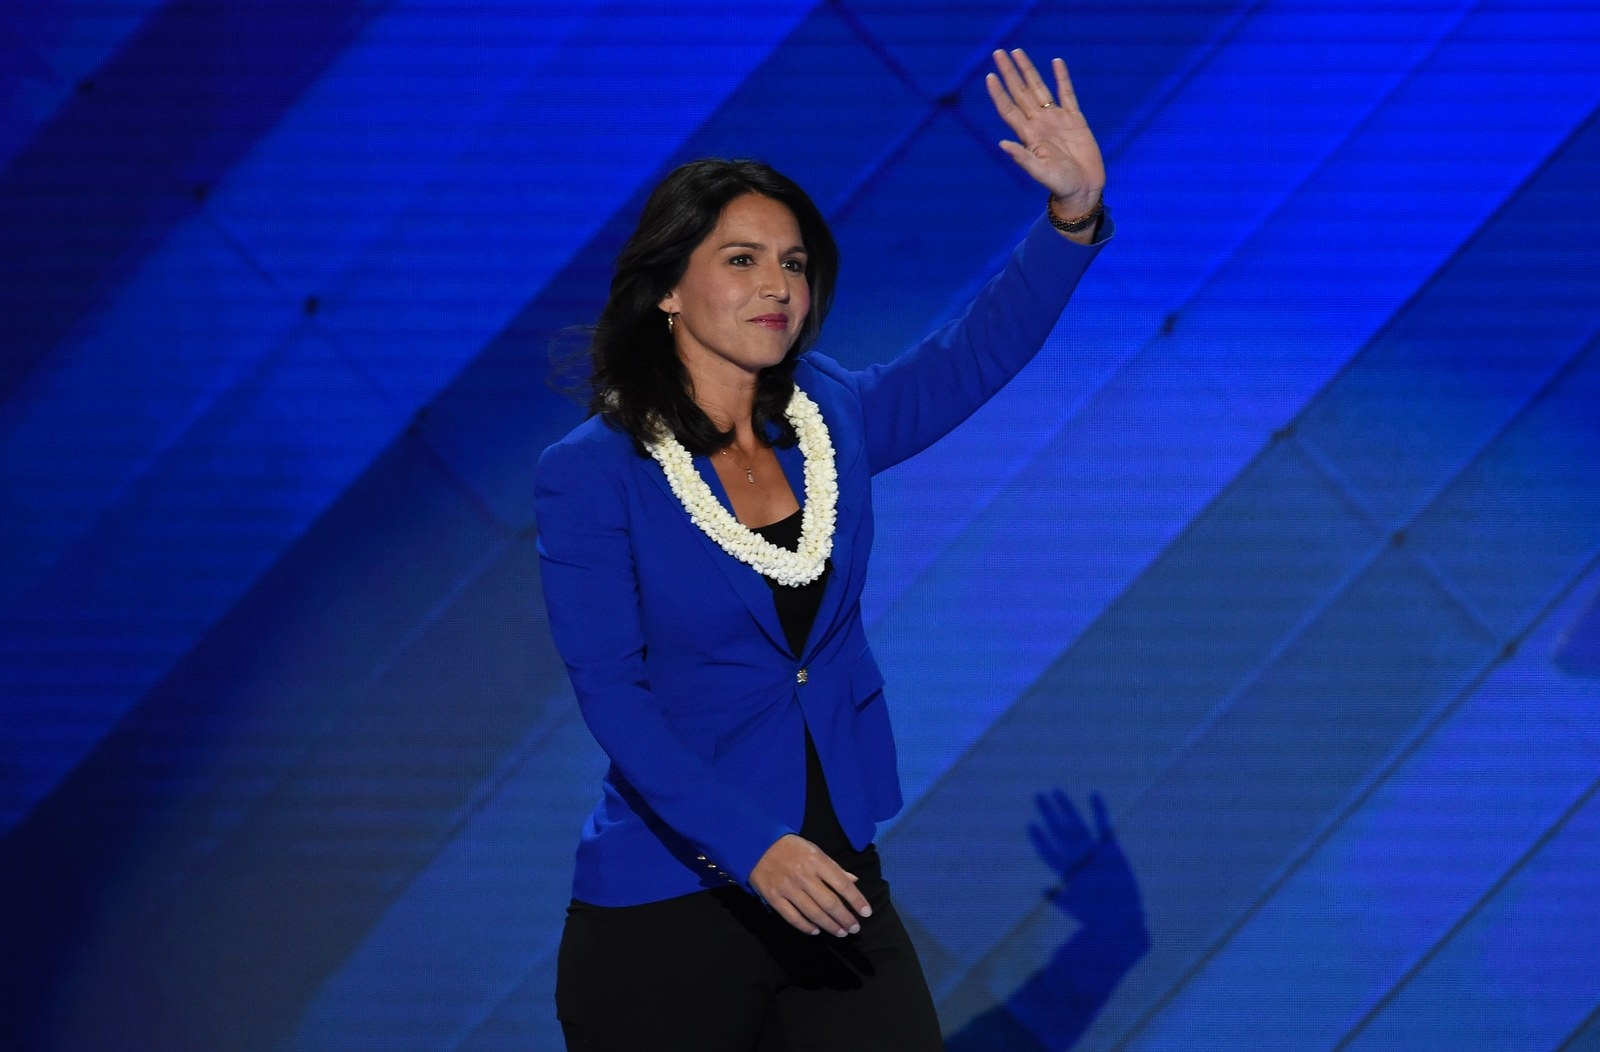 US Representative Tulsi Gabbard speaks during Day 2 of the Democratic National Convention at the Wells Fargo Center in Philadelphia, Pennsylvania, July 26, 2016. / AFP / SAUL LOEB (Photo credit should read SAUL LOEB/AFP/Getty Images)